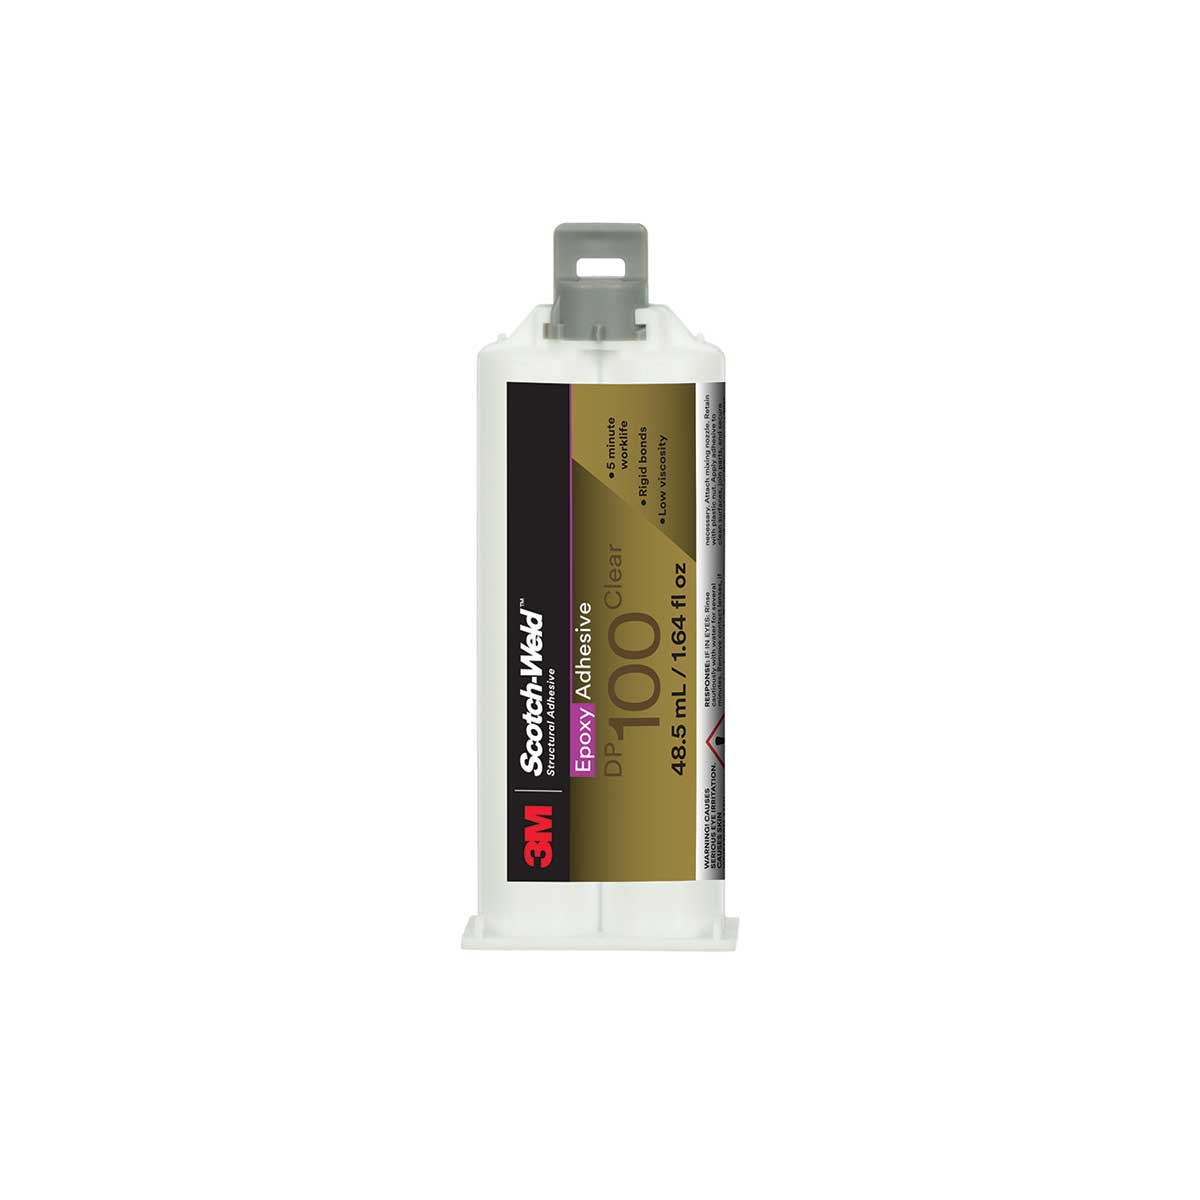 3M™ Scotch-Weld™ Epoxy Adhesive DP100, Clear, 48.5 mL Duo-Pak, Case of 12